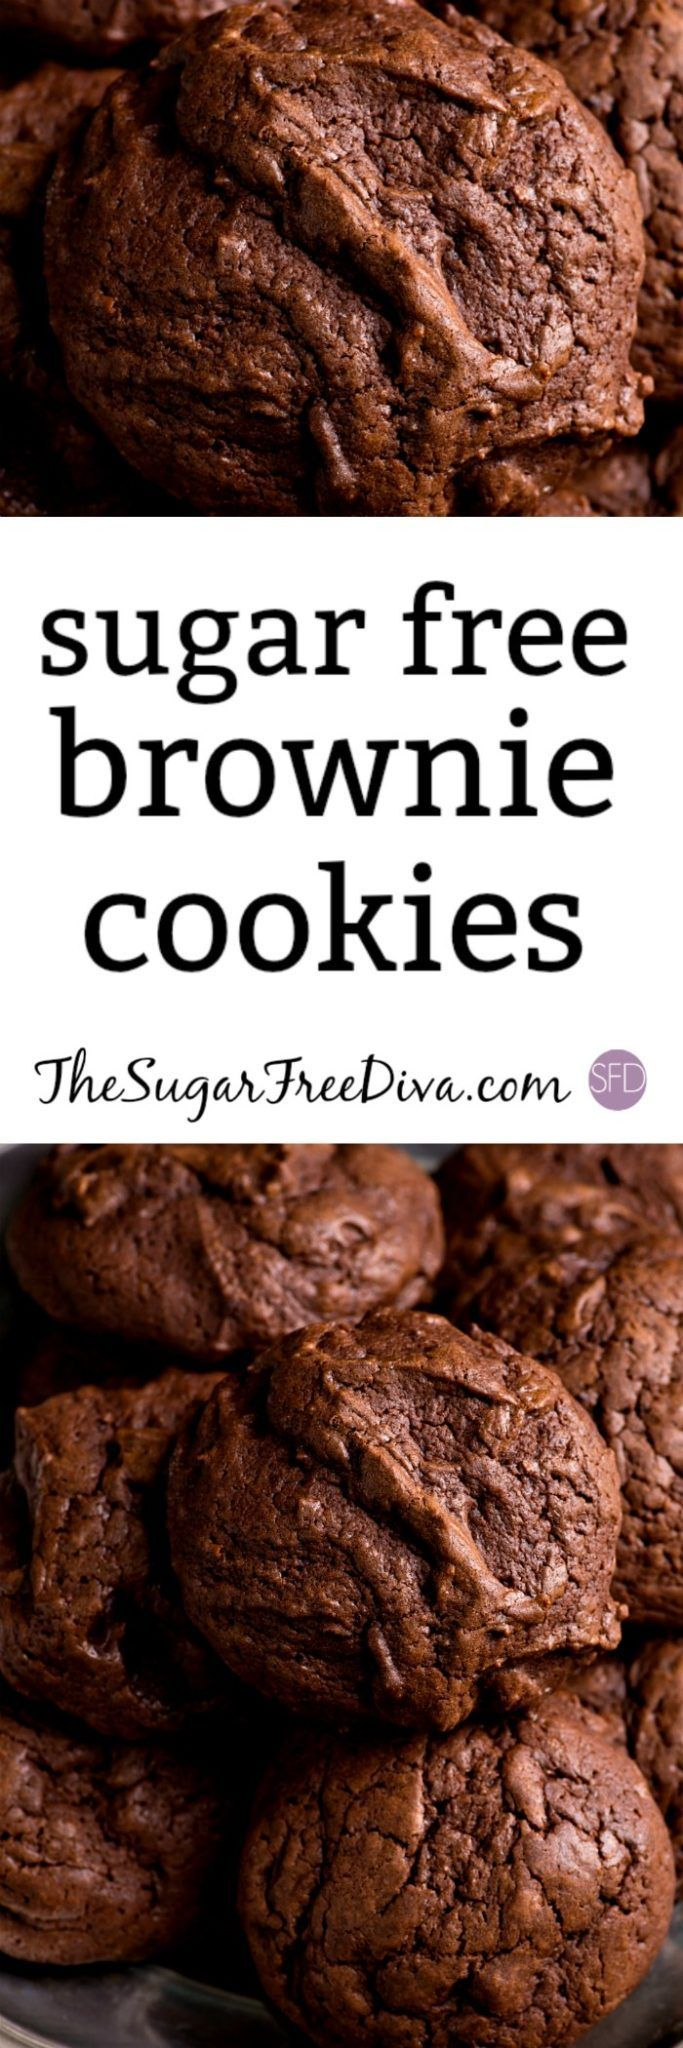 Sugar Free Brownie Cookies It's like the best of all worlds! #sugarfree #recipe #baking #holiday #cookies #brownies #chocolate